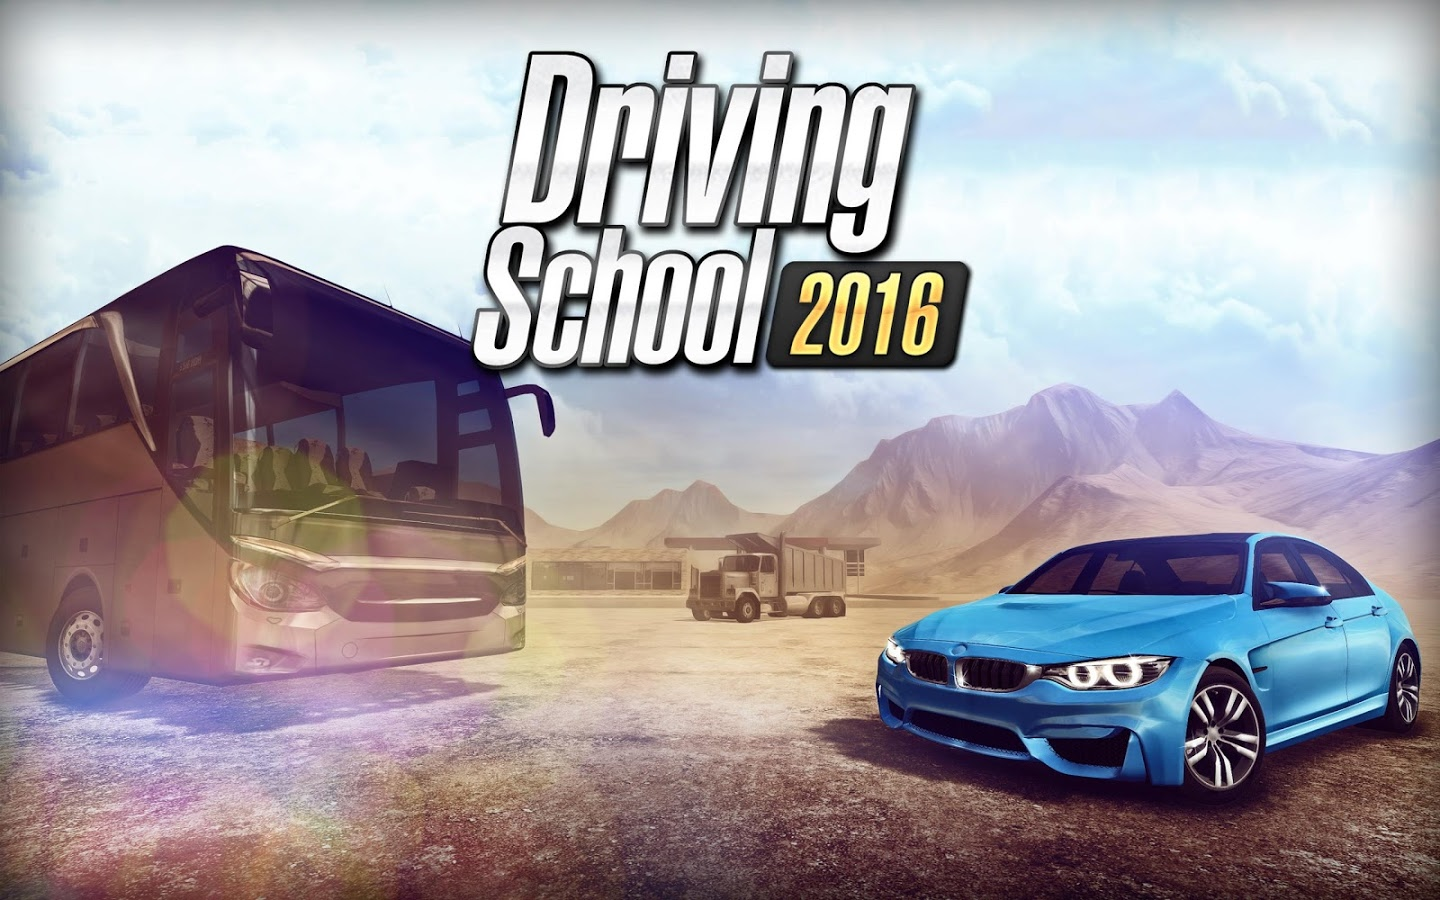 Arcade Driving School >> Driving School 2016 Game Apk v1.5.0 Mod (Unlimited Money) Free Download - Games INA